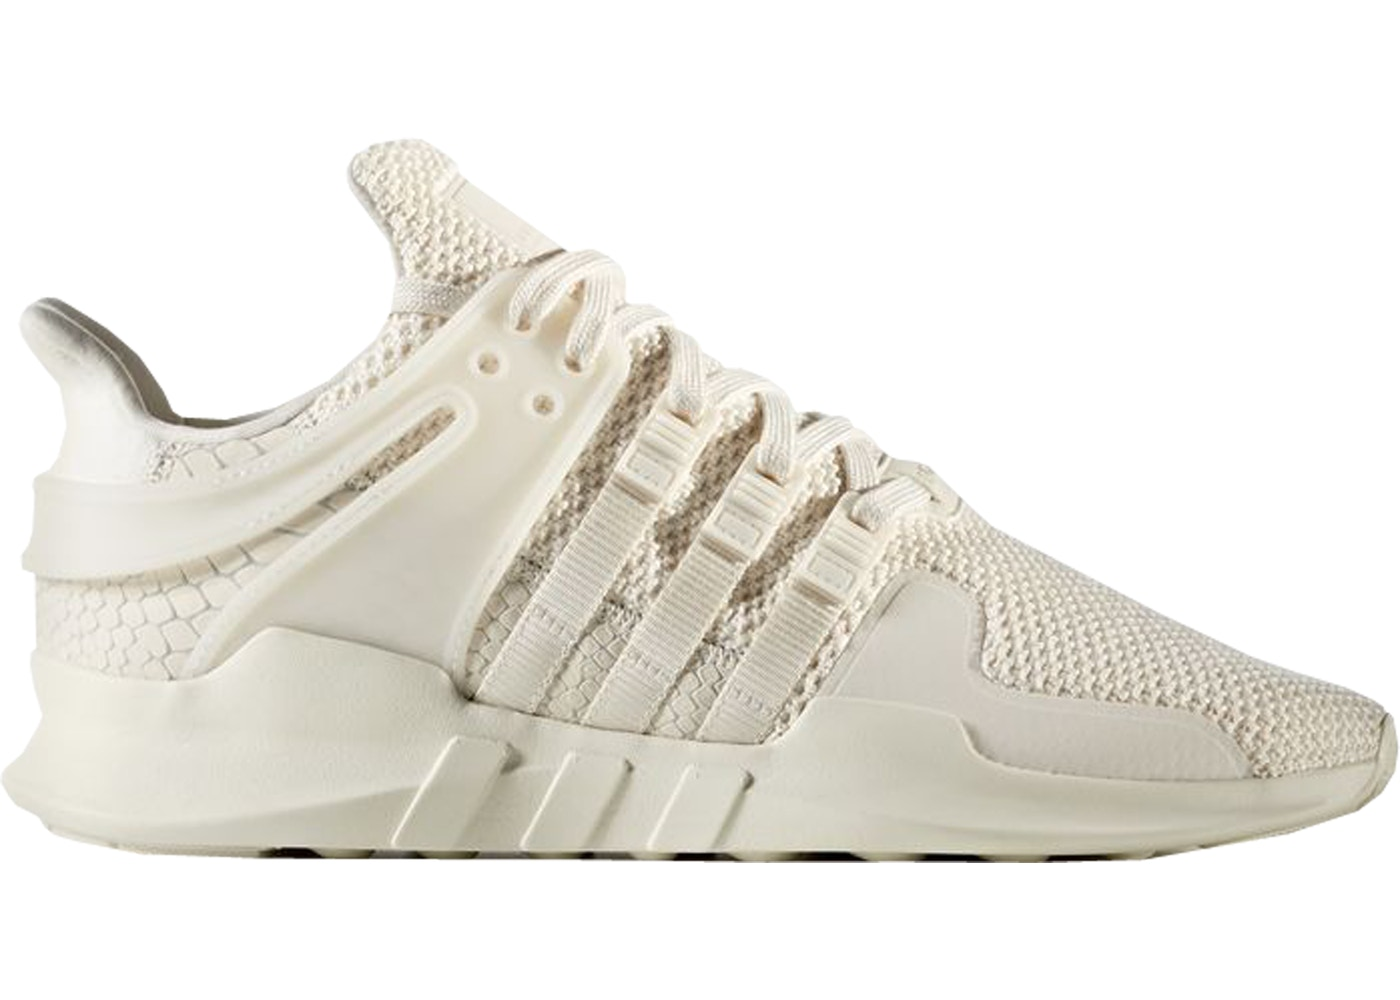 premium selection 5c710 4afb3 adidas EQT Support ADV Snakeskin Chalk White